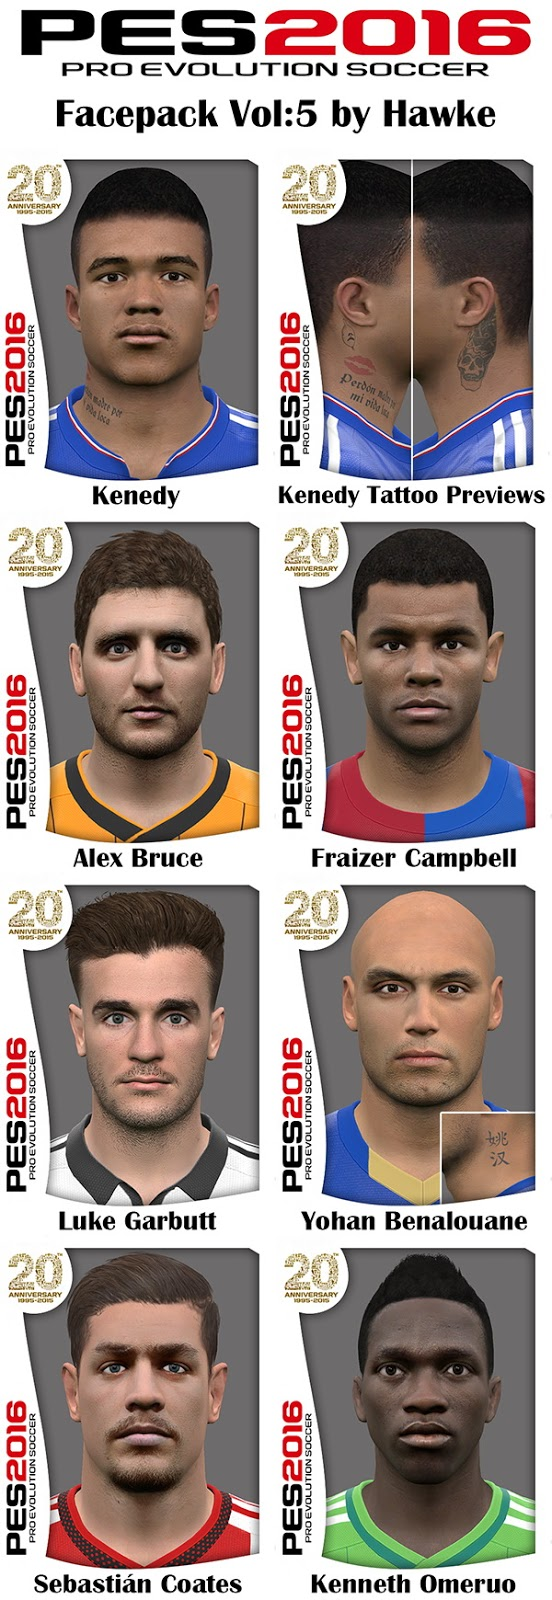 PES 2016 Facepack Vol:5 by Hawke